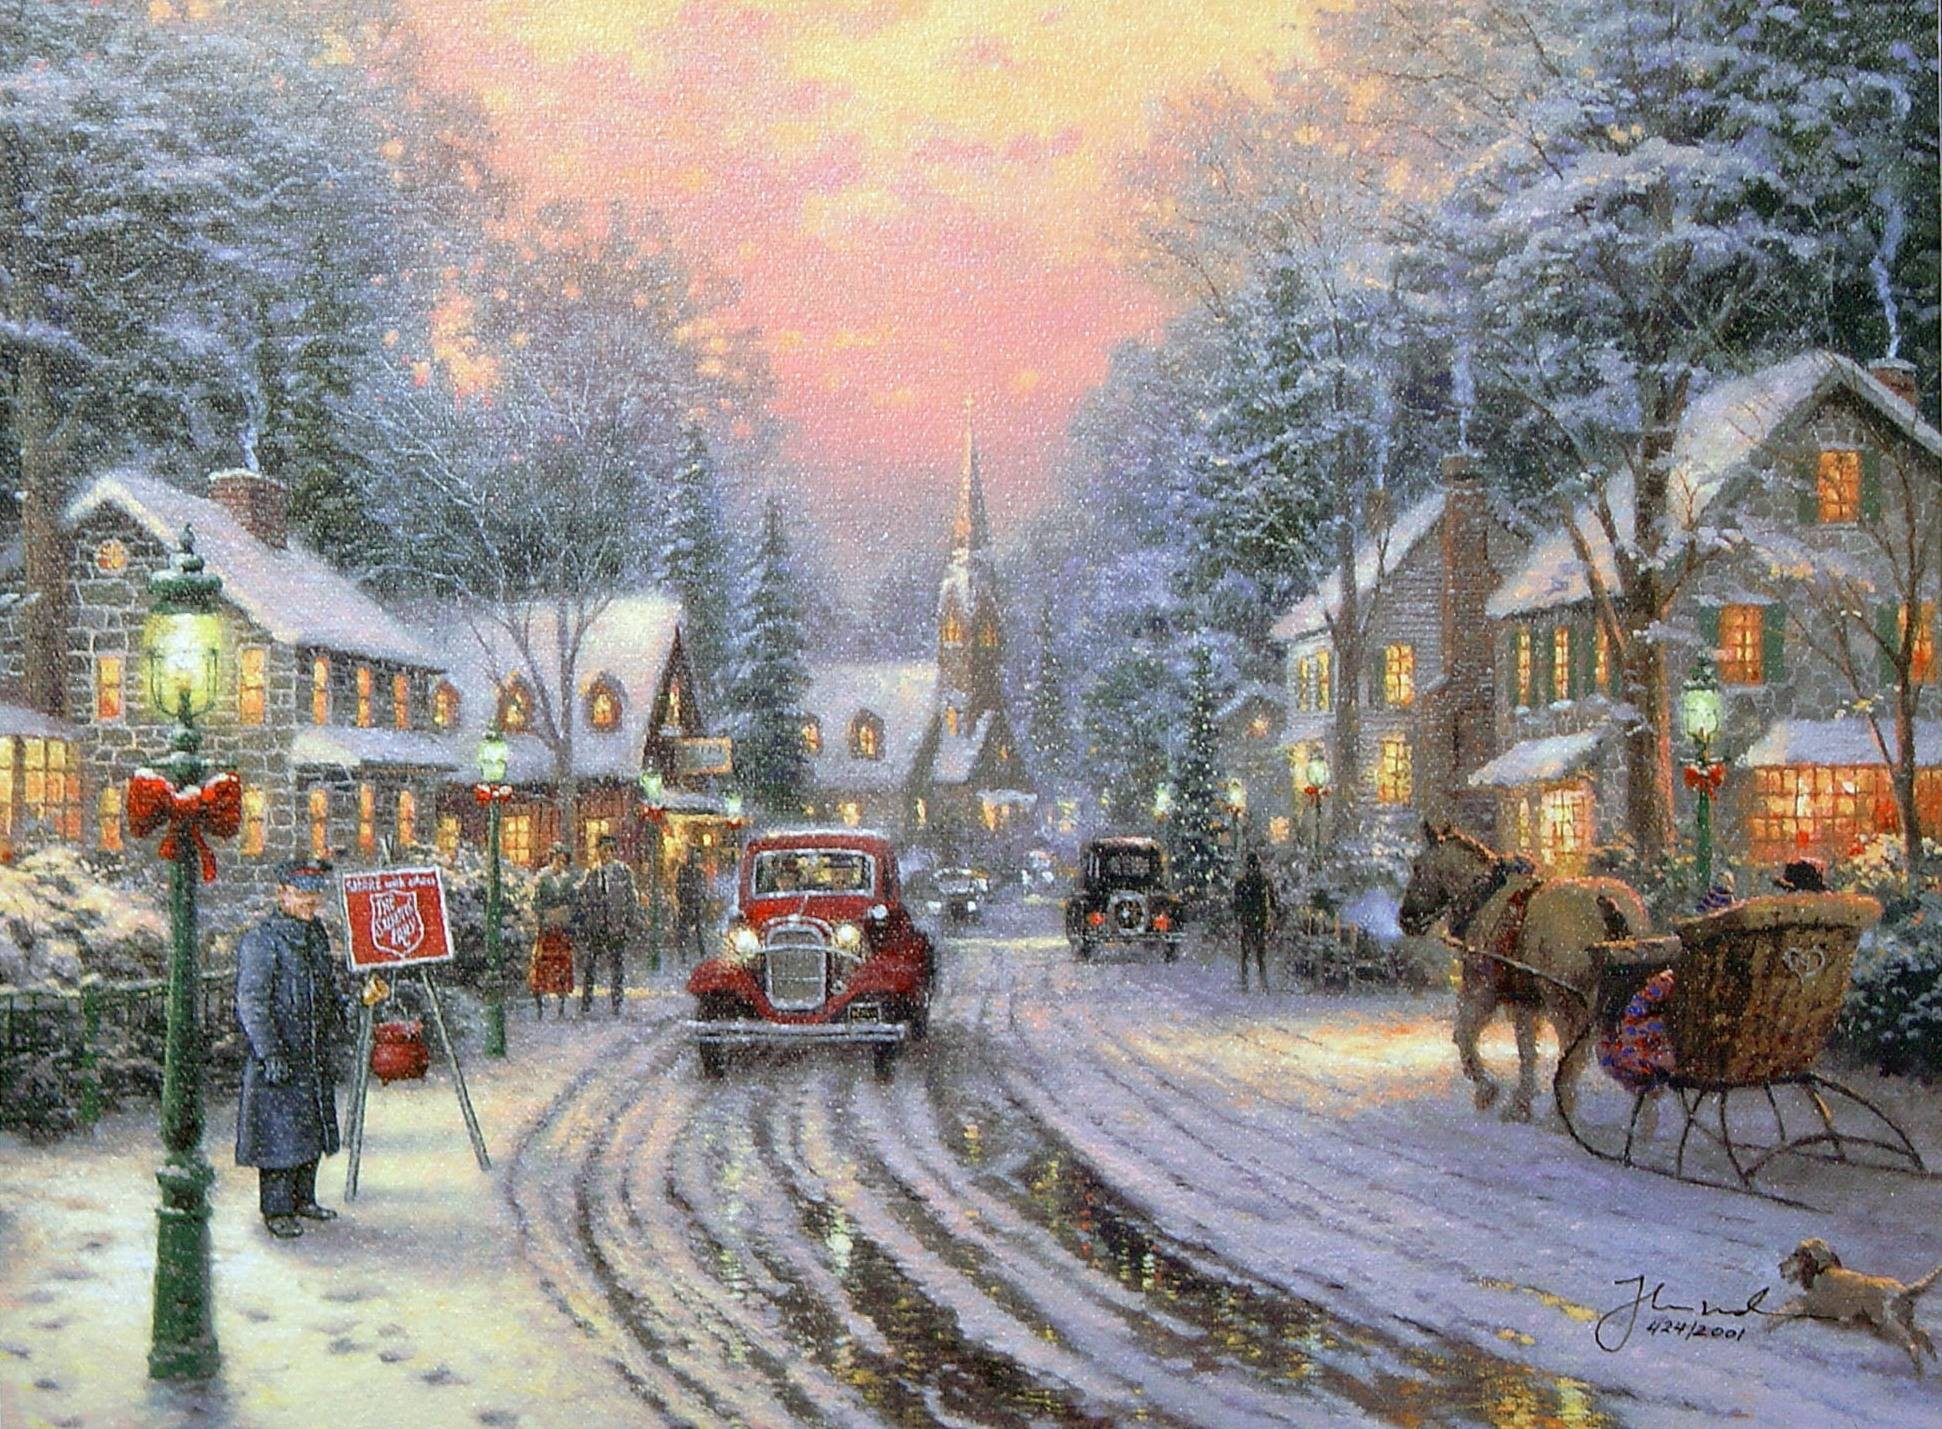 Christmas Painting by Thomas Kinkade Wallpaper and Background Image